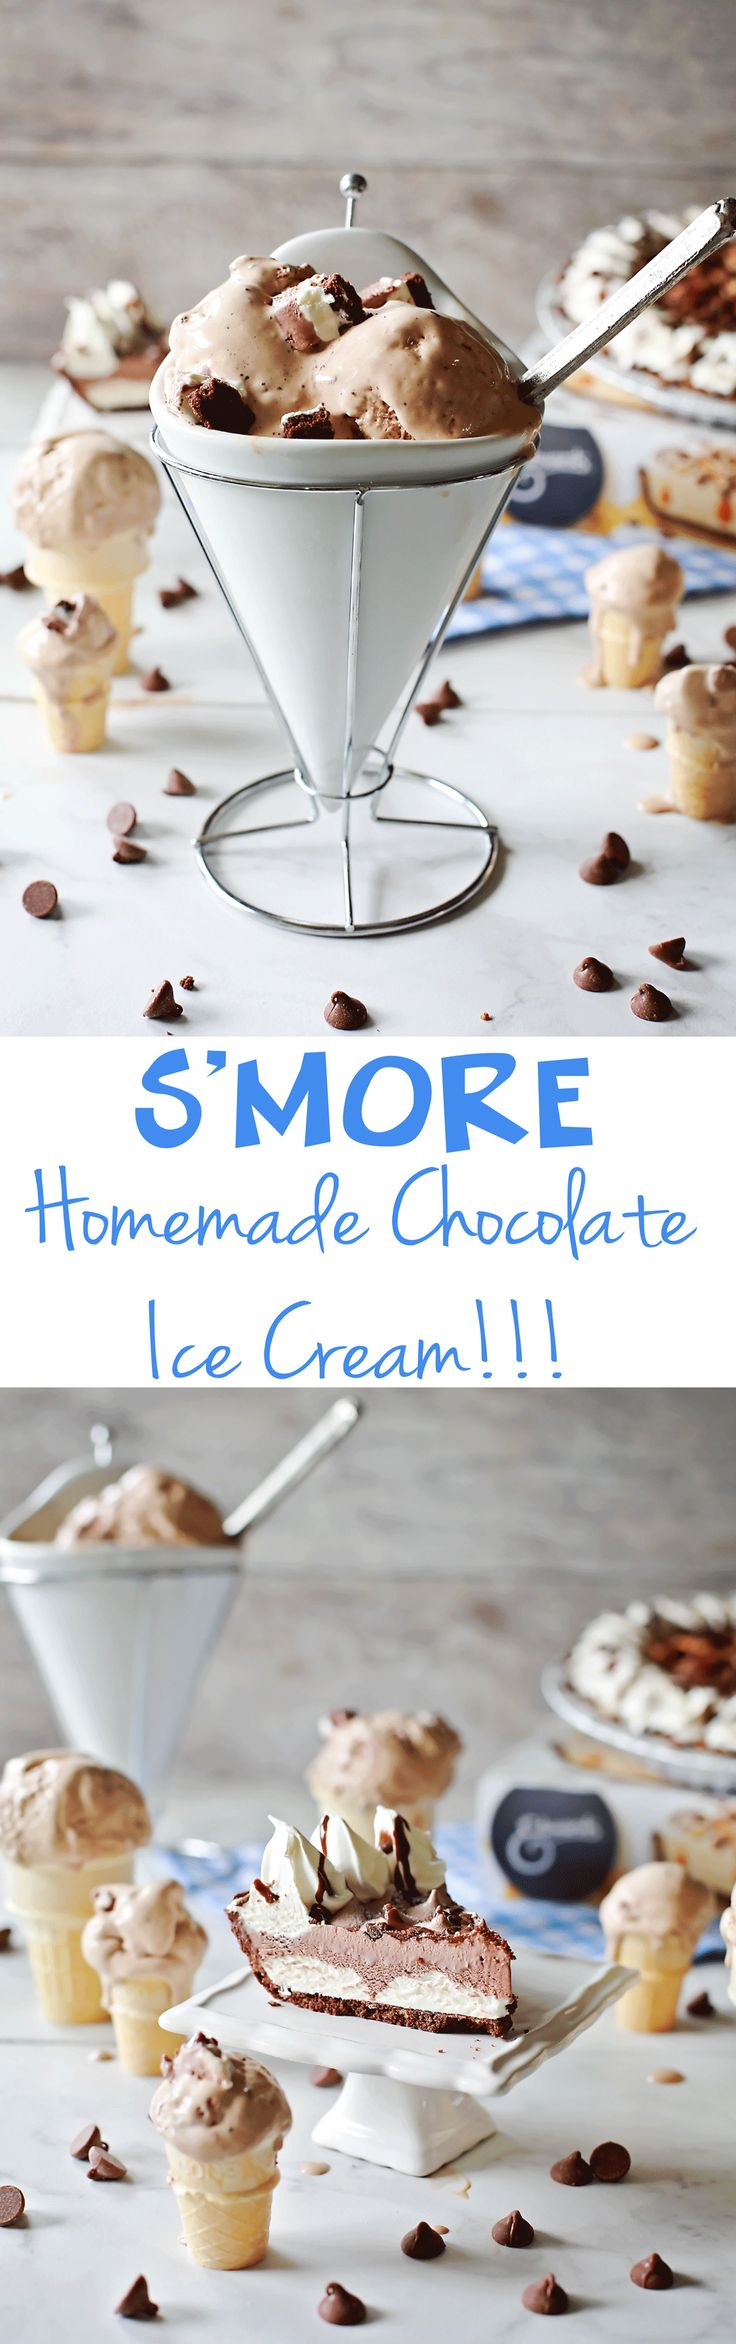 S'more homemade Chocolate Ice Cream recipe by Flirting with Flavor using Edwards S'mores Pies. #ad #collectivebias #SameTasteNewLook